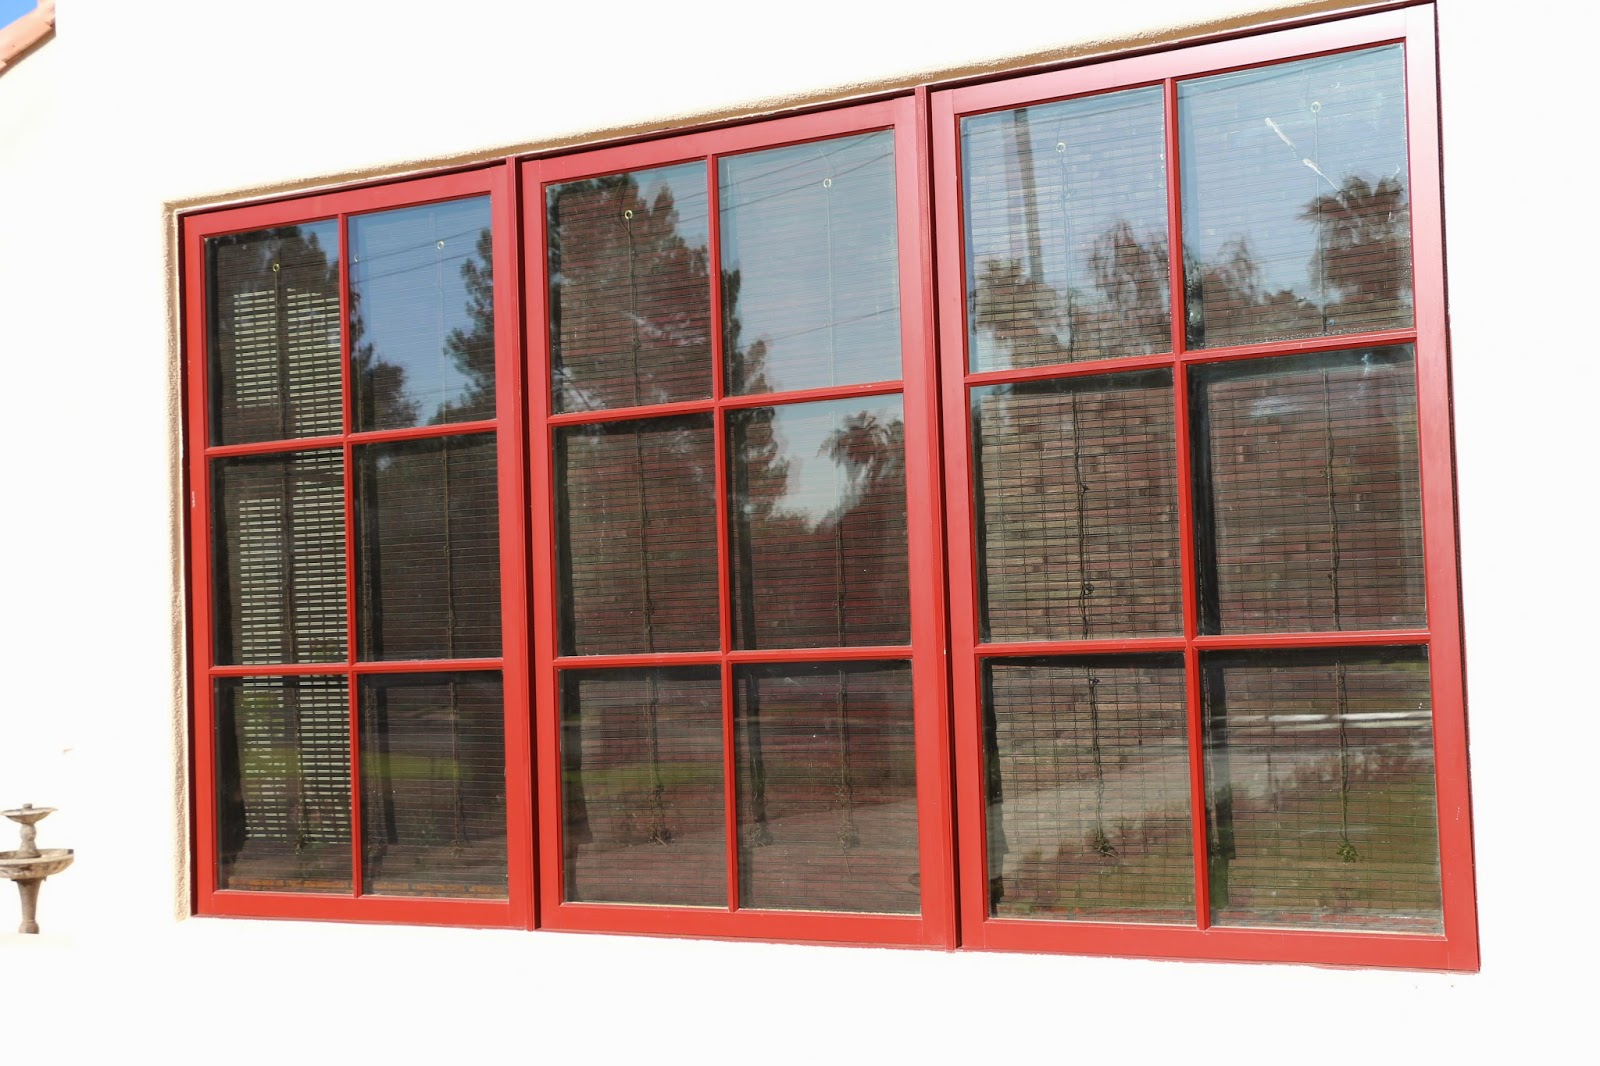 bamboo blinds from the outside, weathershield brick red windows, weathershield casement windows